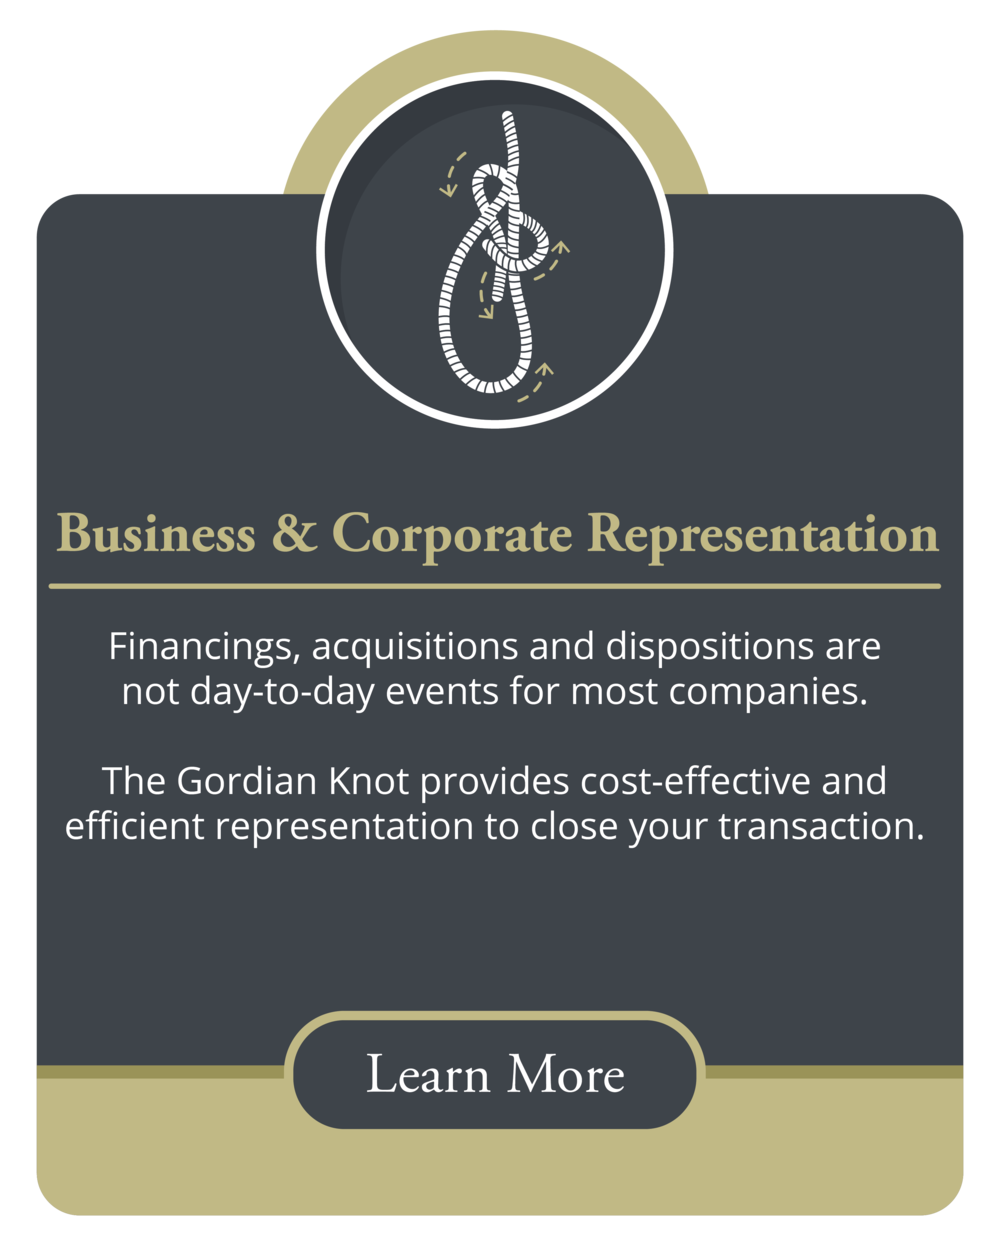 GordianKnot-Business-Corporate-Representation.png